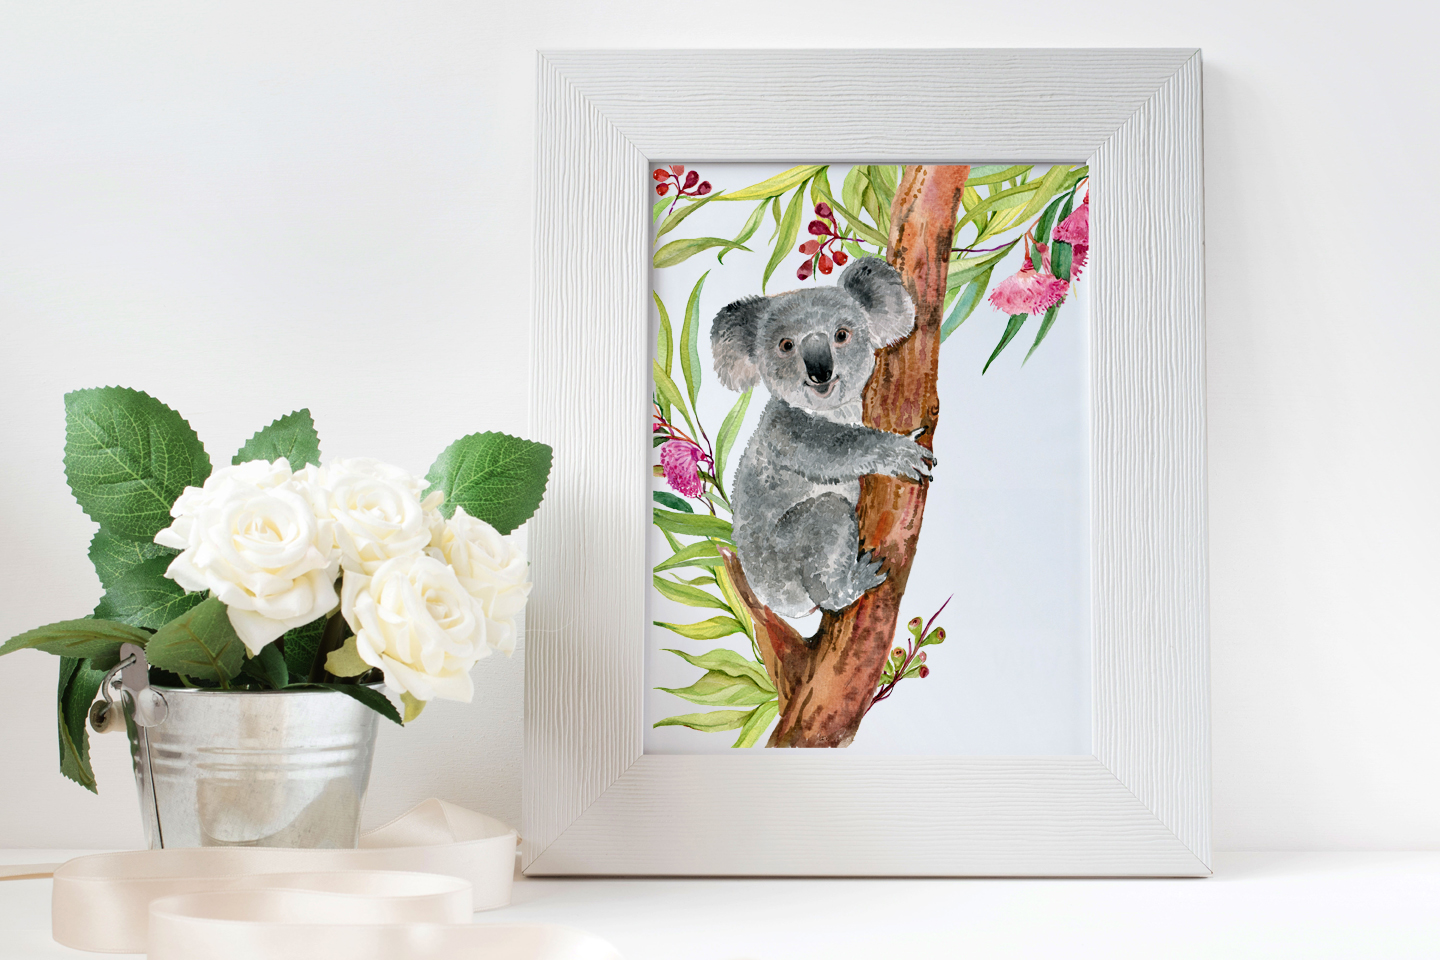 Koala & eucalyptus set illustration example image 6